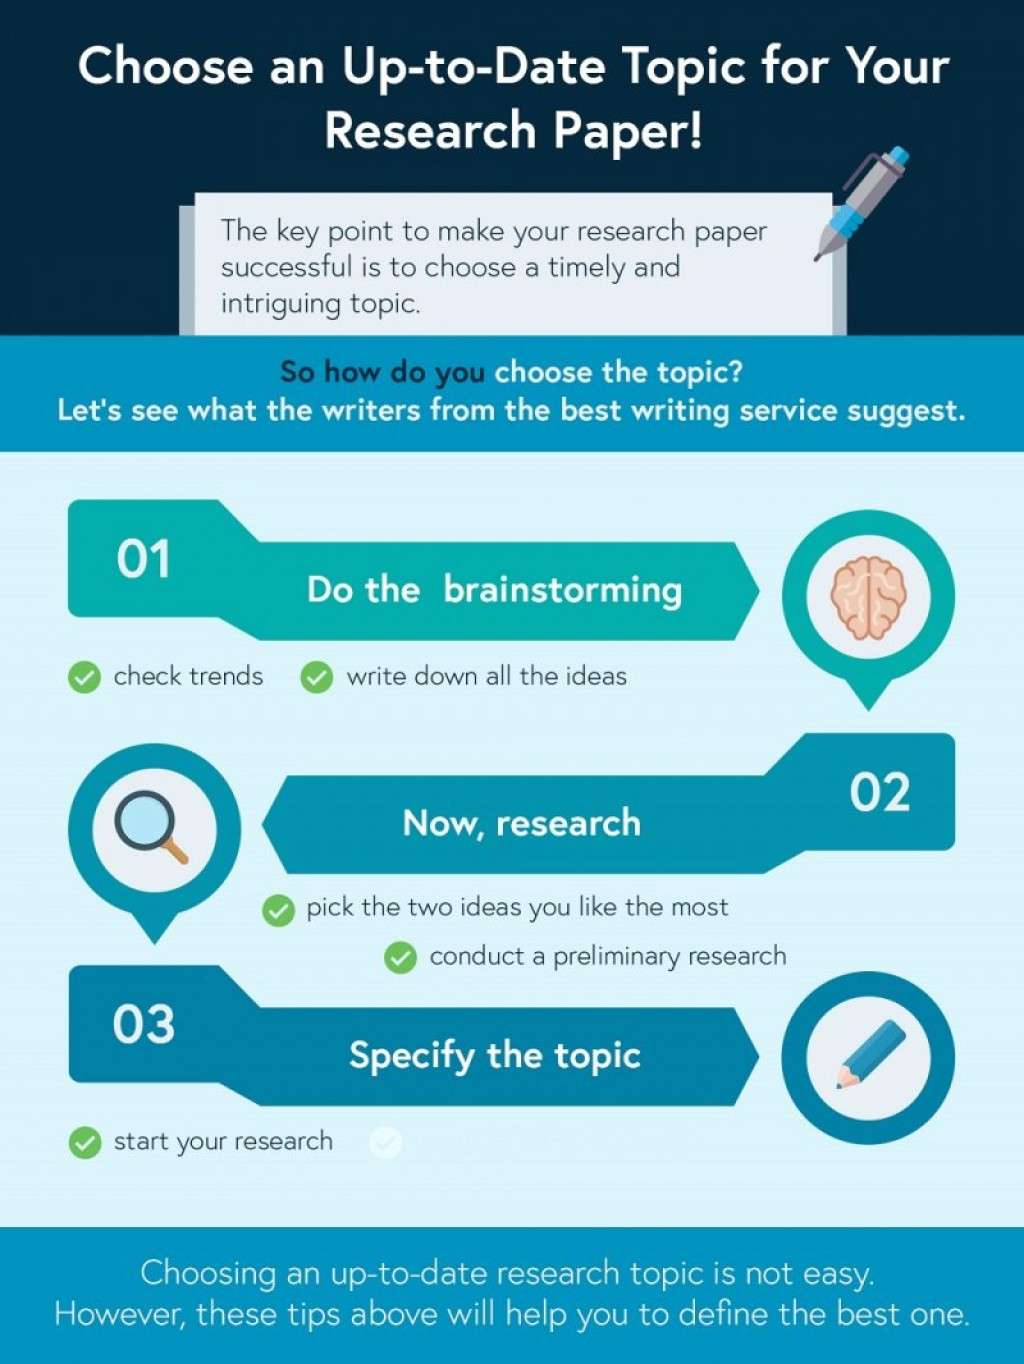 006 Research Paper Infographic Writing Dreaded Service Services In India Best Academic Online Large